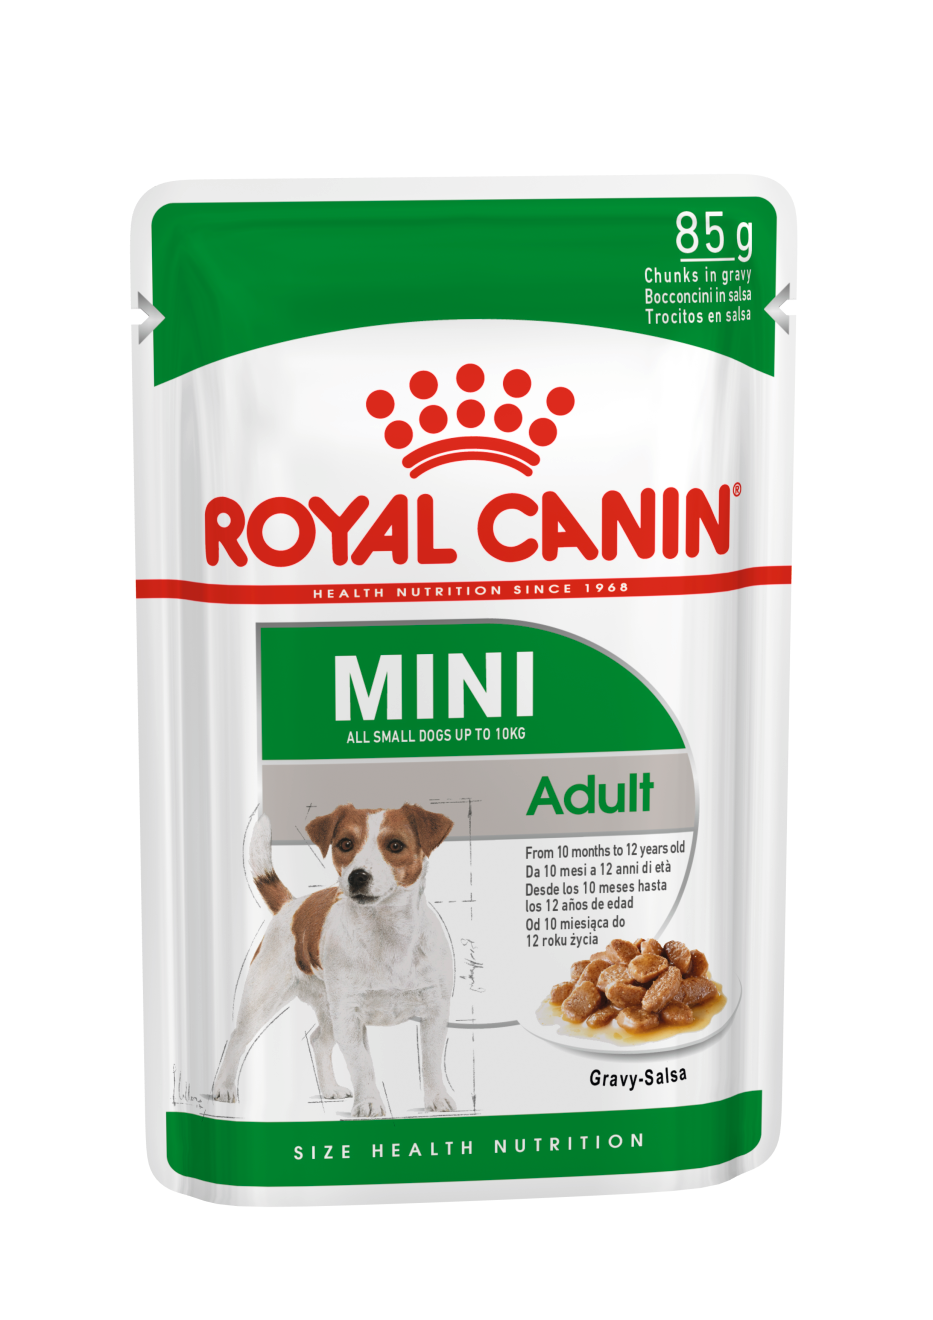 ROYAL CANIN® Mini Adult in Gravy